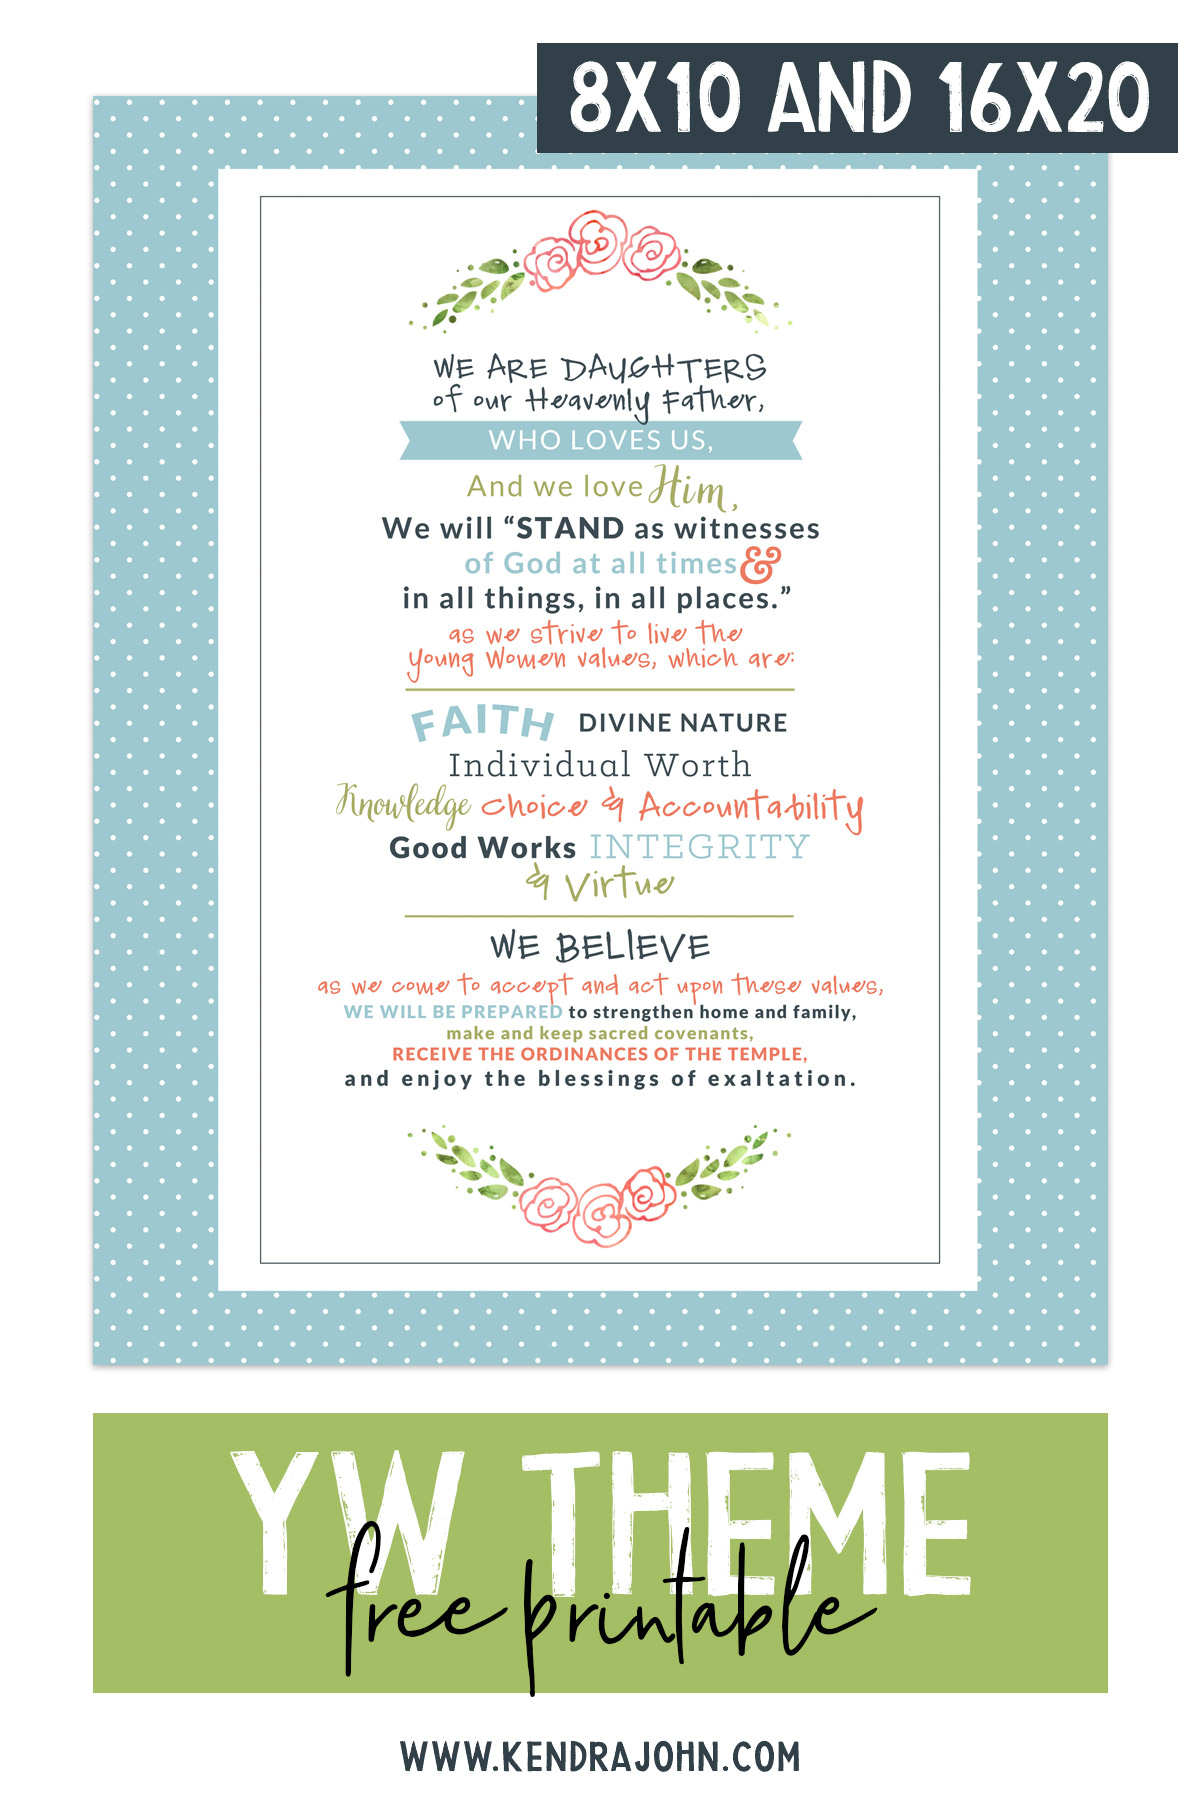 YW Theme Free Printable